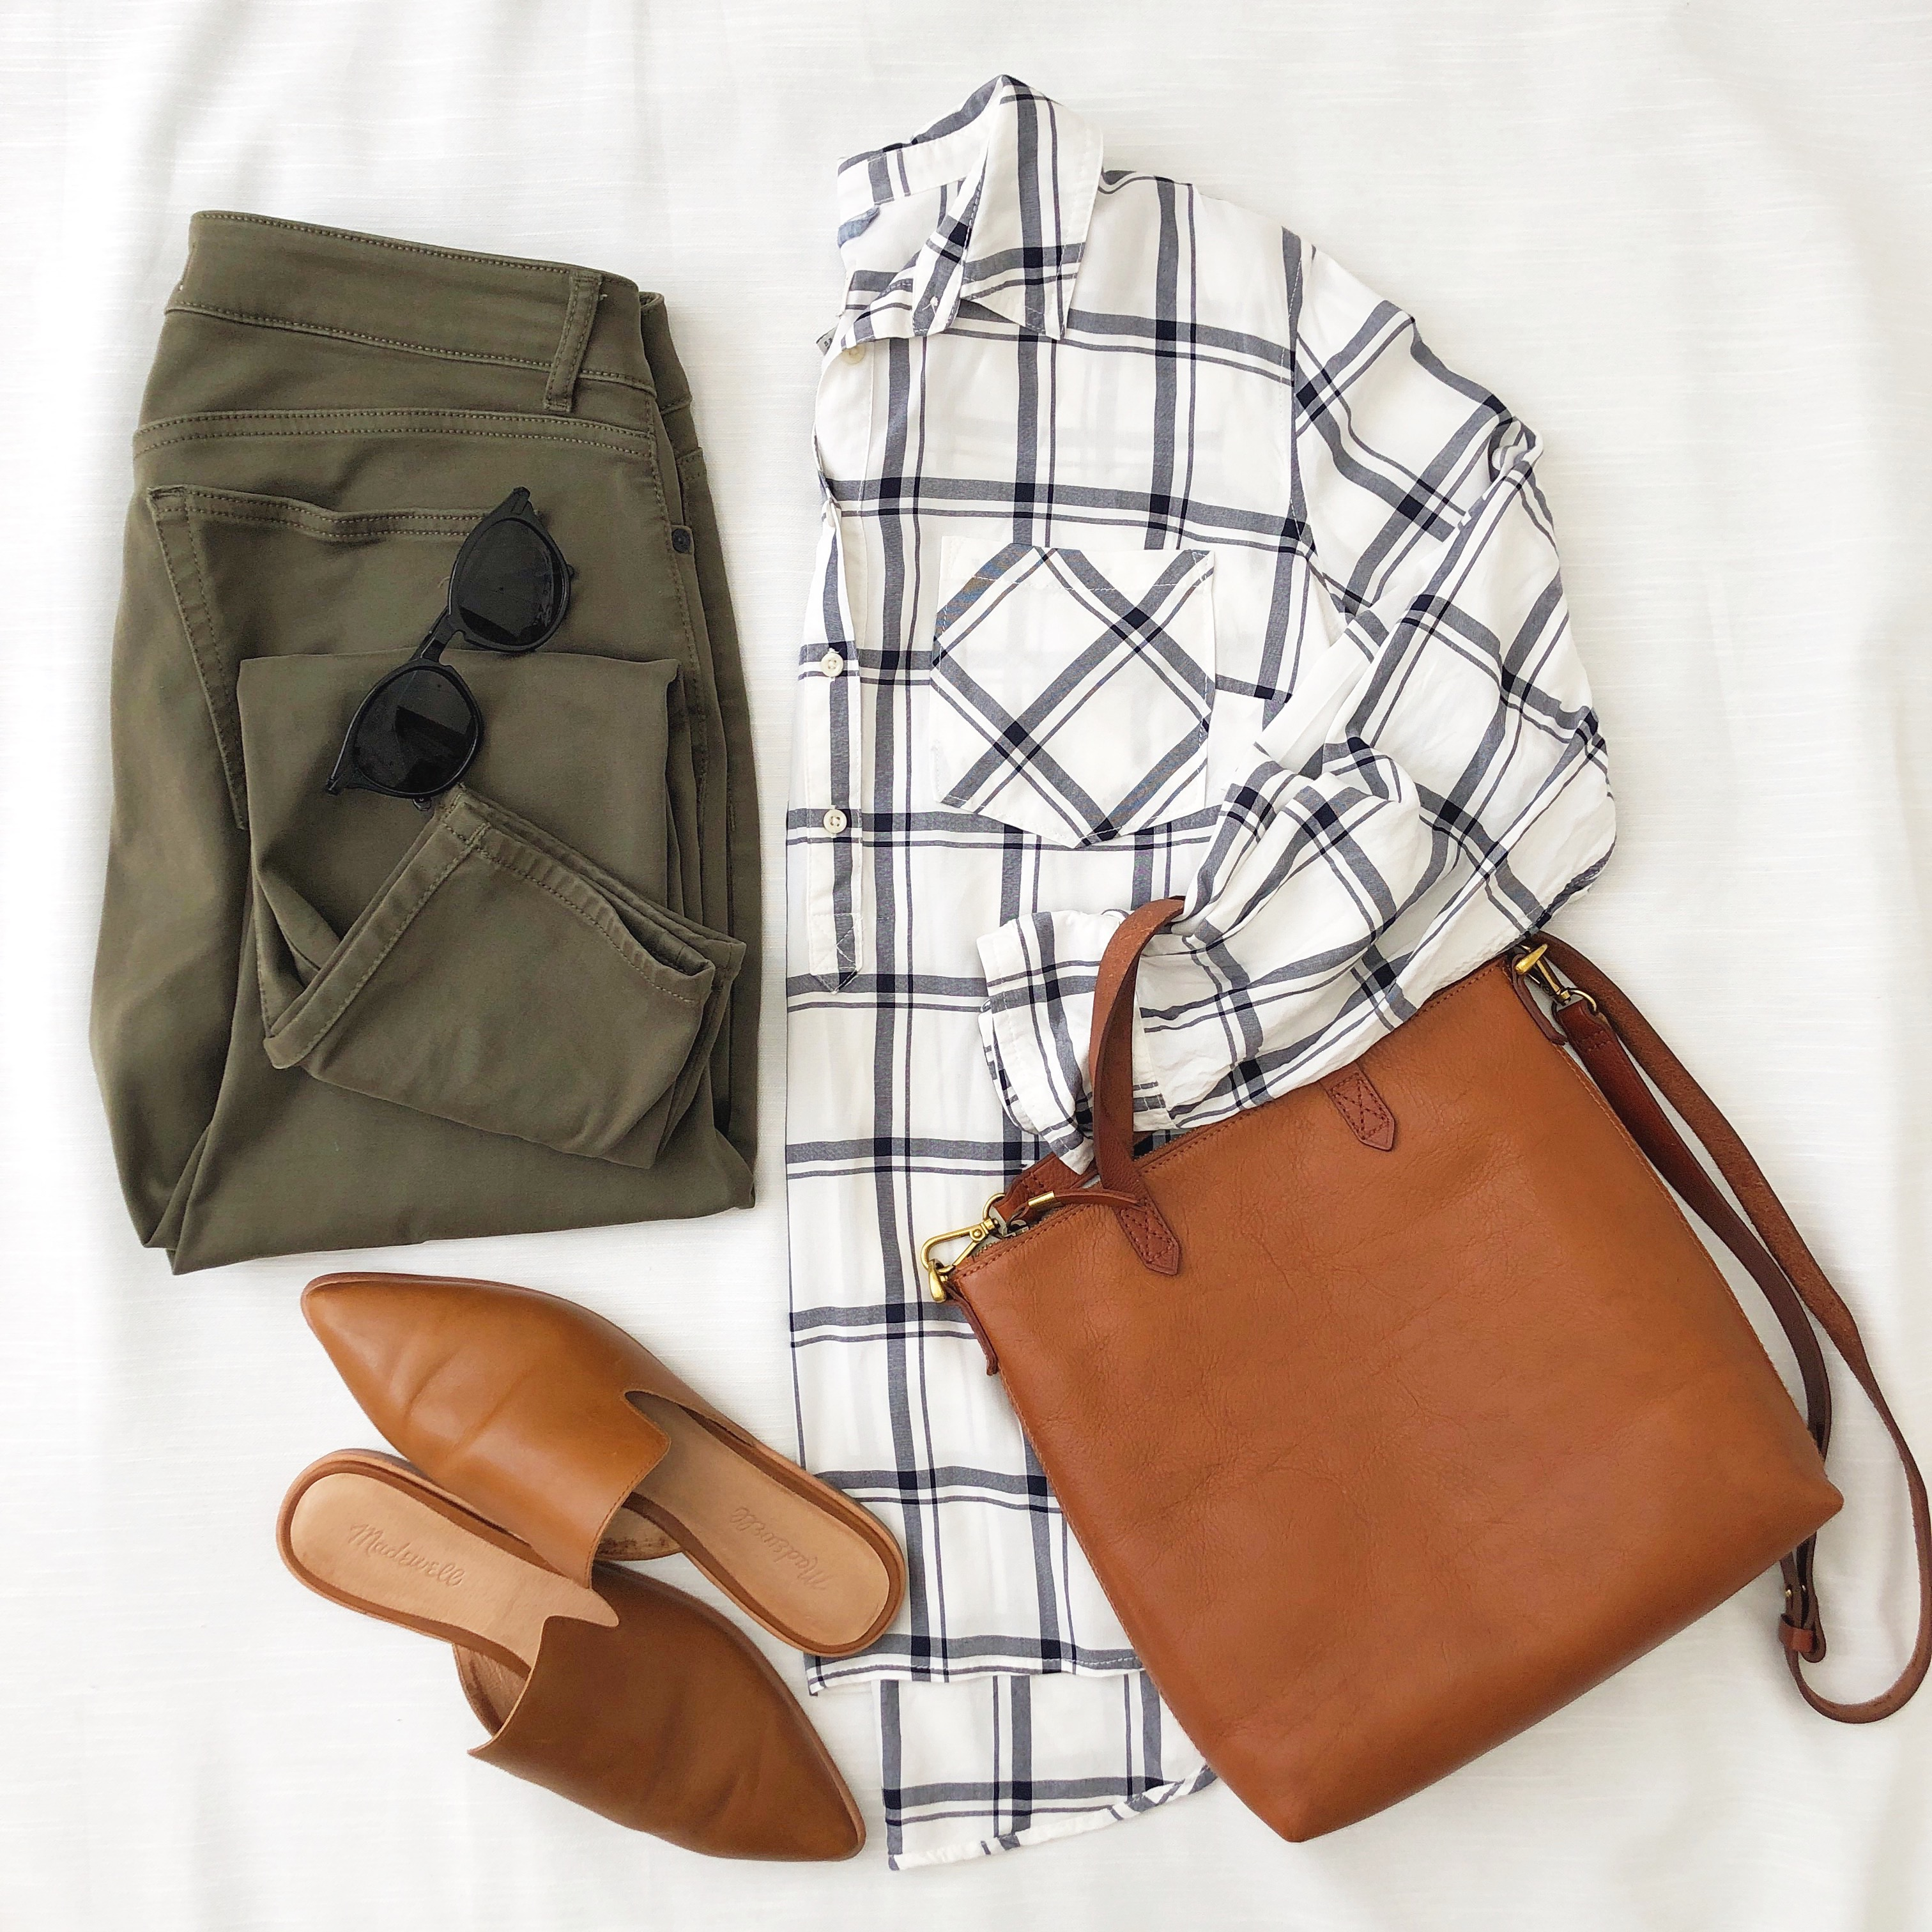 Instagram Flatlay Outfit - Oct 2018 plaid shirt olive jeans leather mules